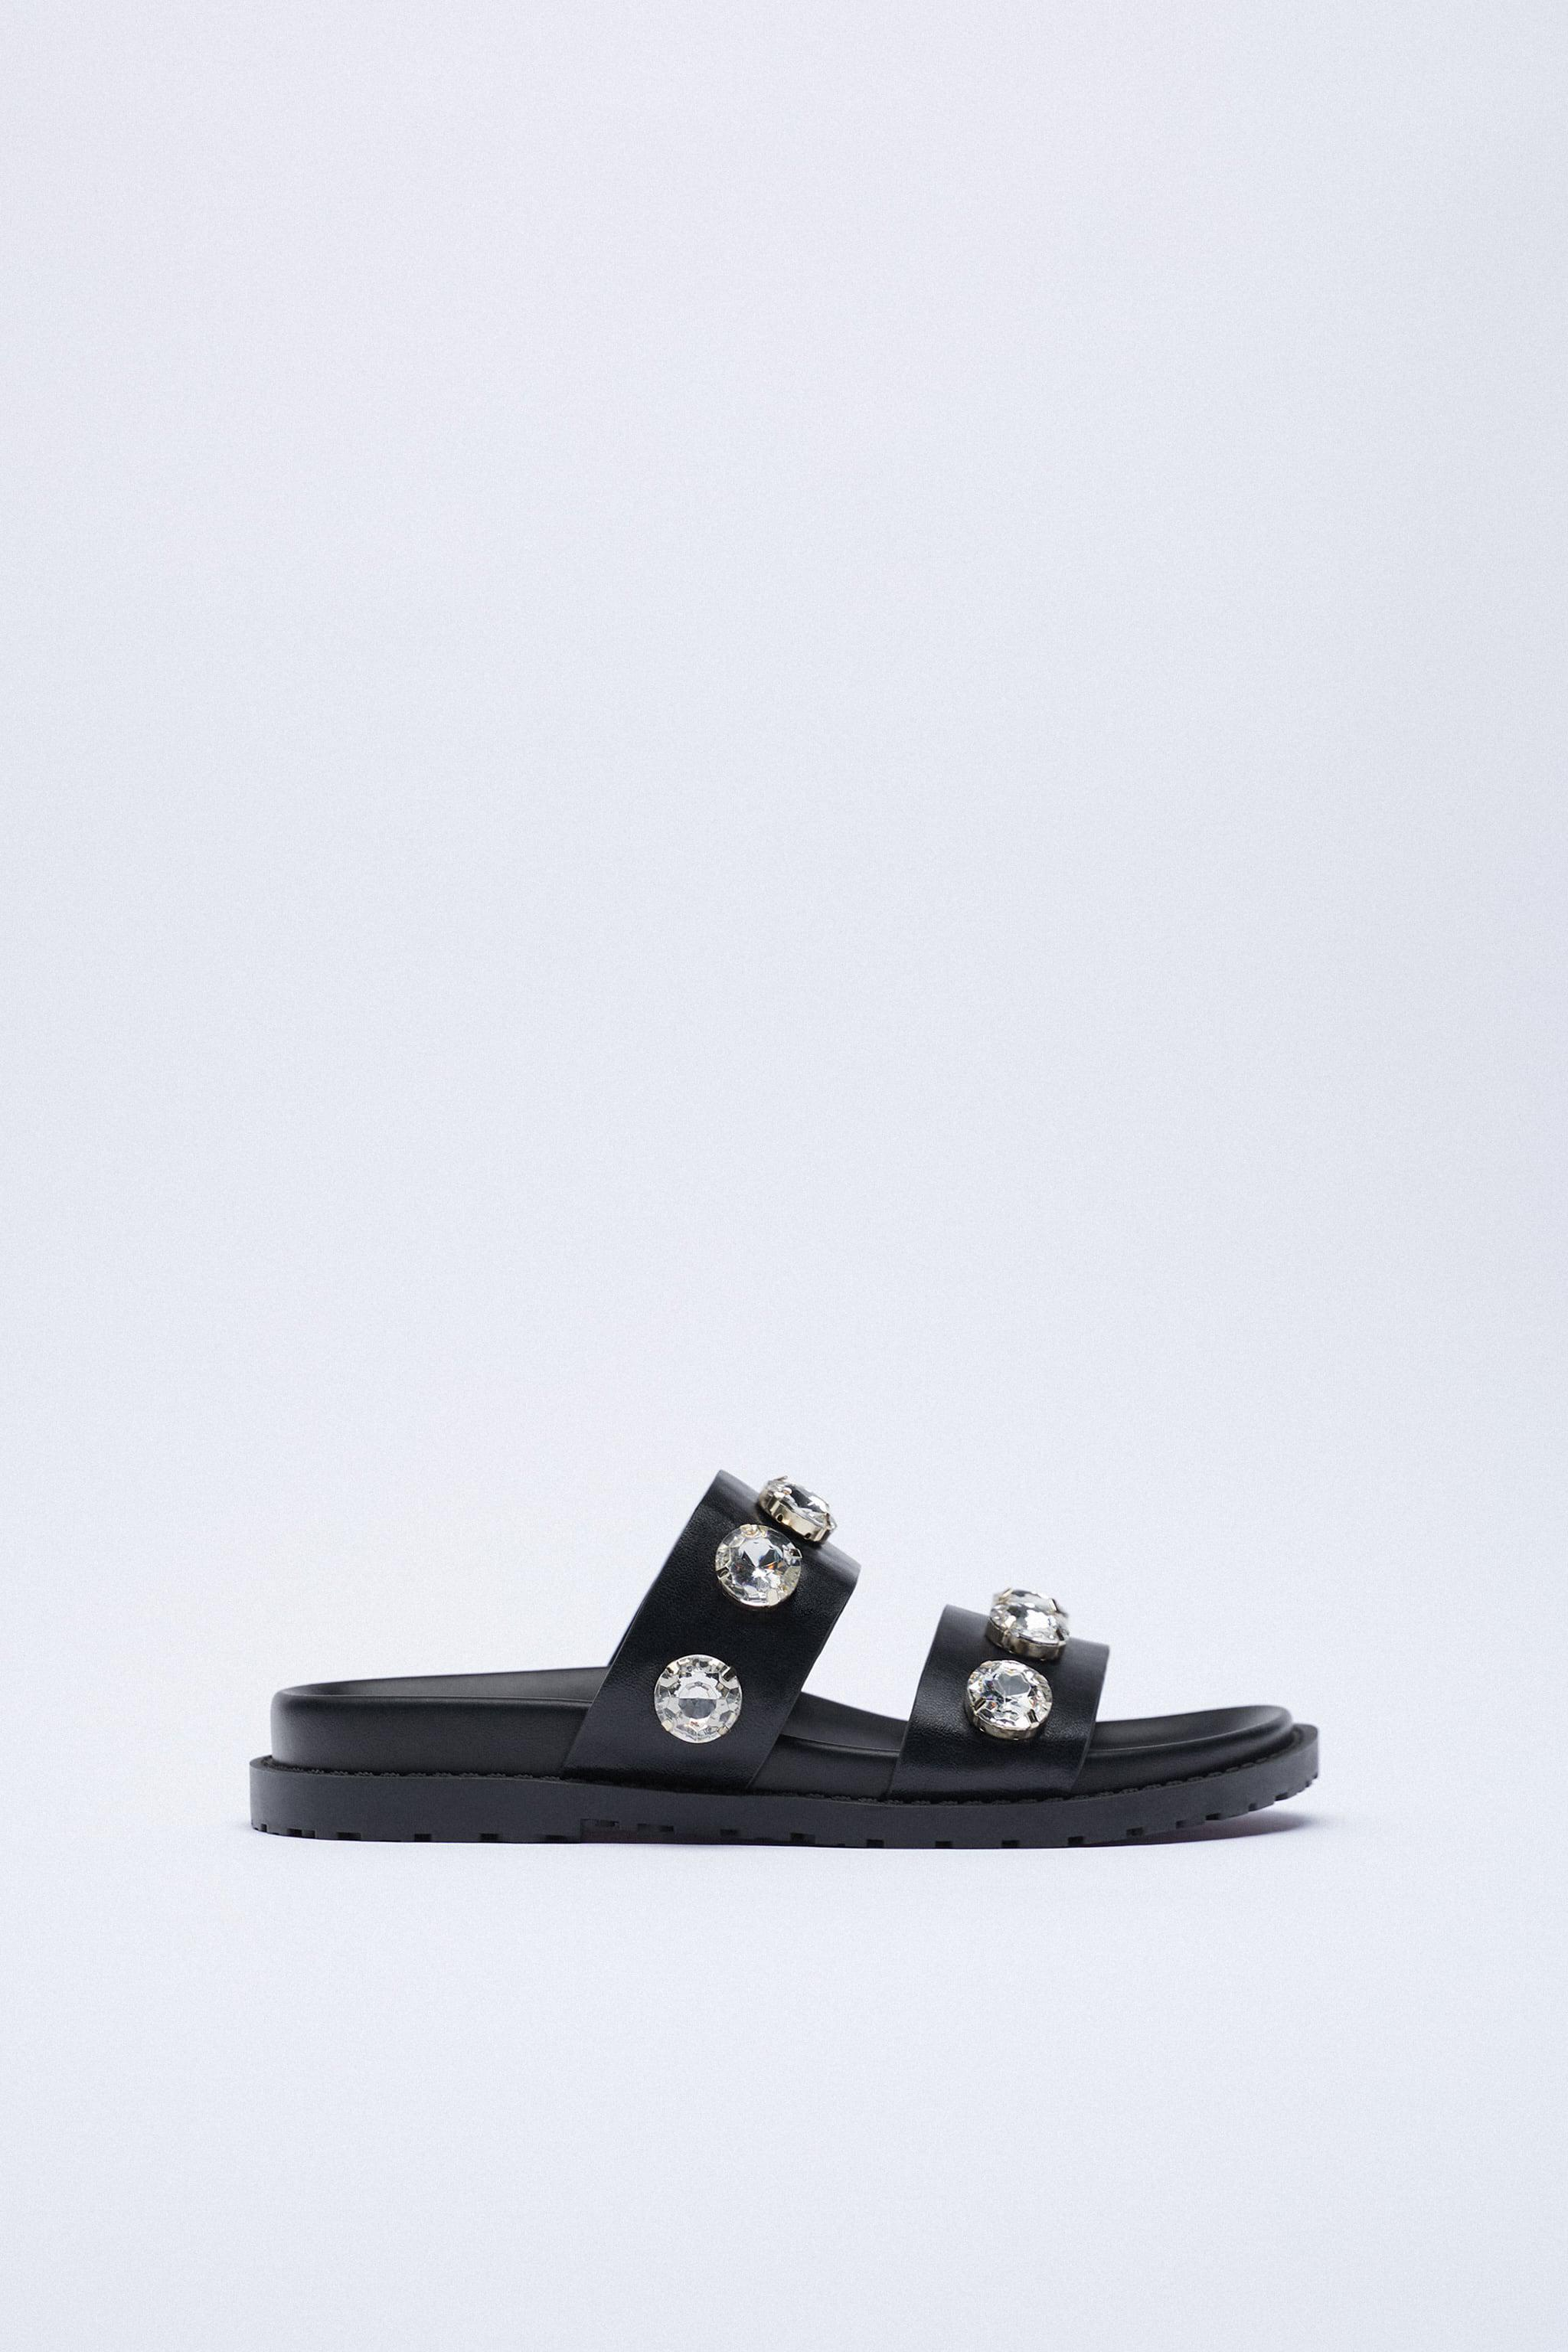 SPARKLY LOW HEELED SANDALS